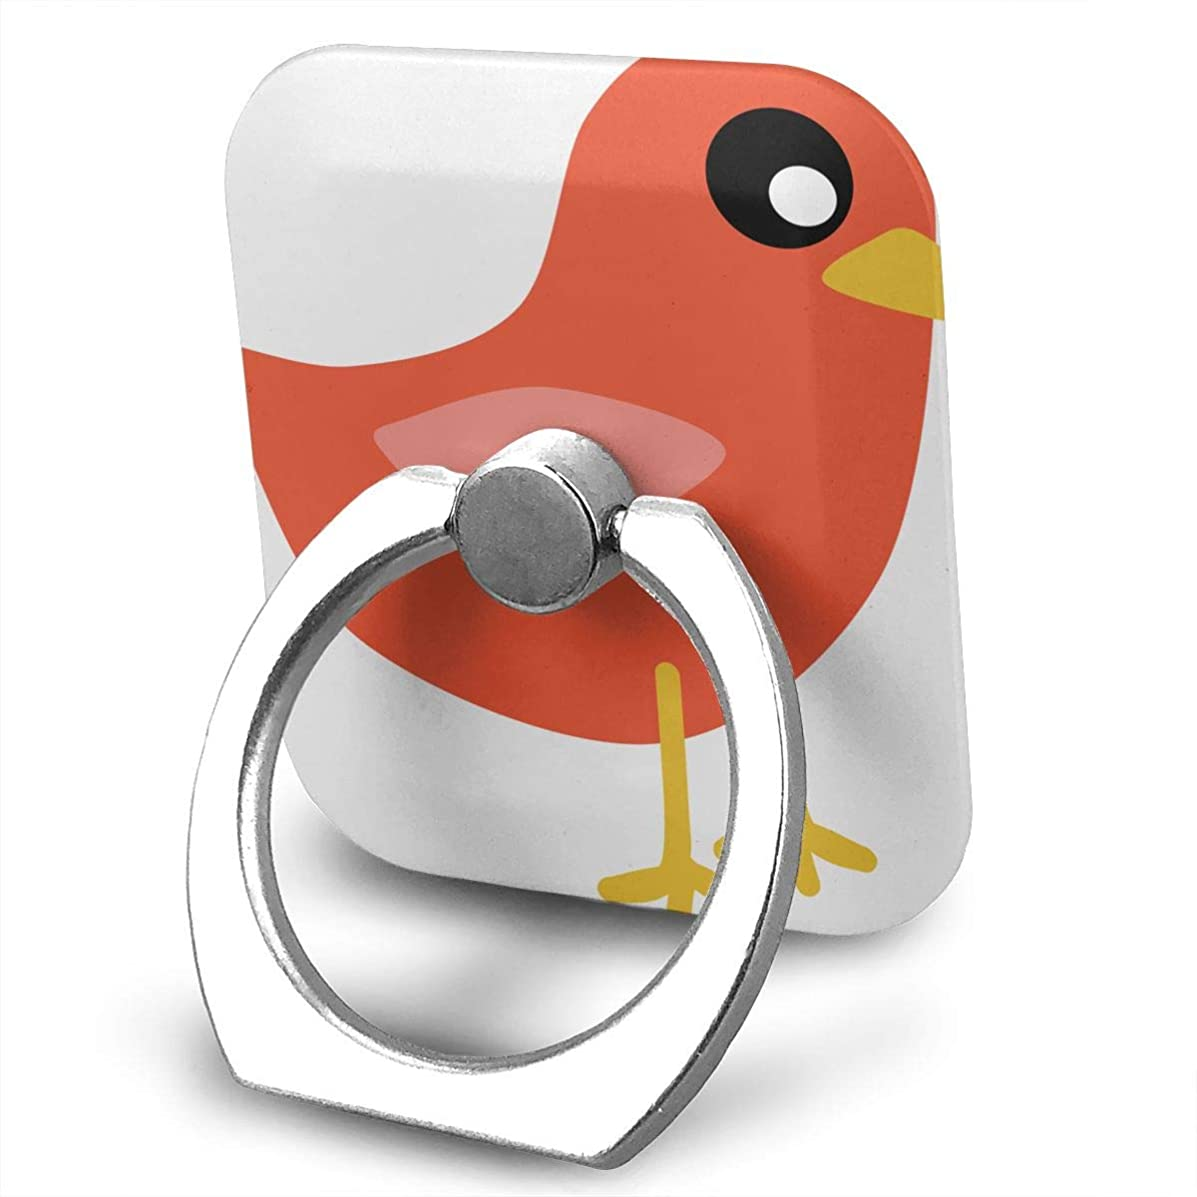 Ring Holder Bird Clip Art Cute Ring Cell Phone Stand Adjustable 360° Rotation Finger Ring Stand for IPad, Kindle, Phone X/6/6s/7/8/8 Plus/7, Divi, Accessories Desk, Android Smartphone